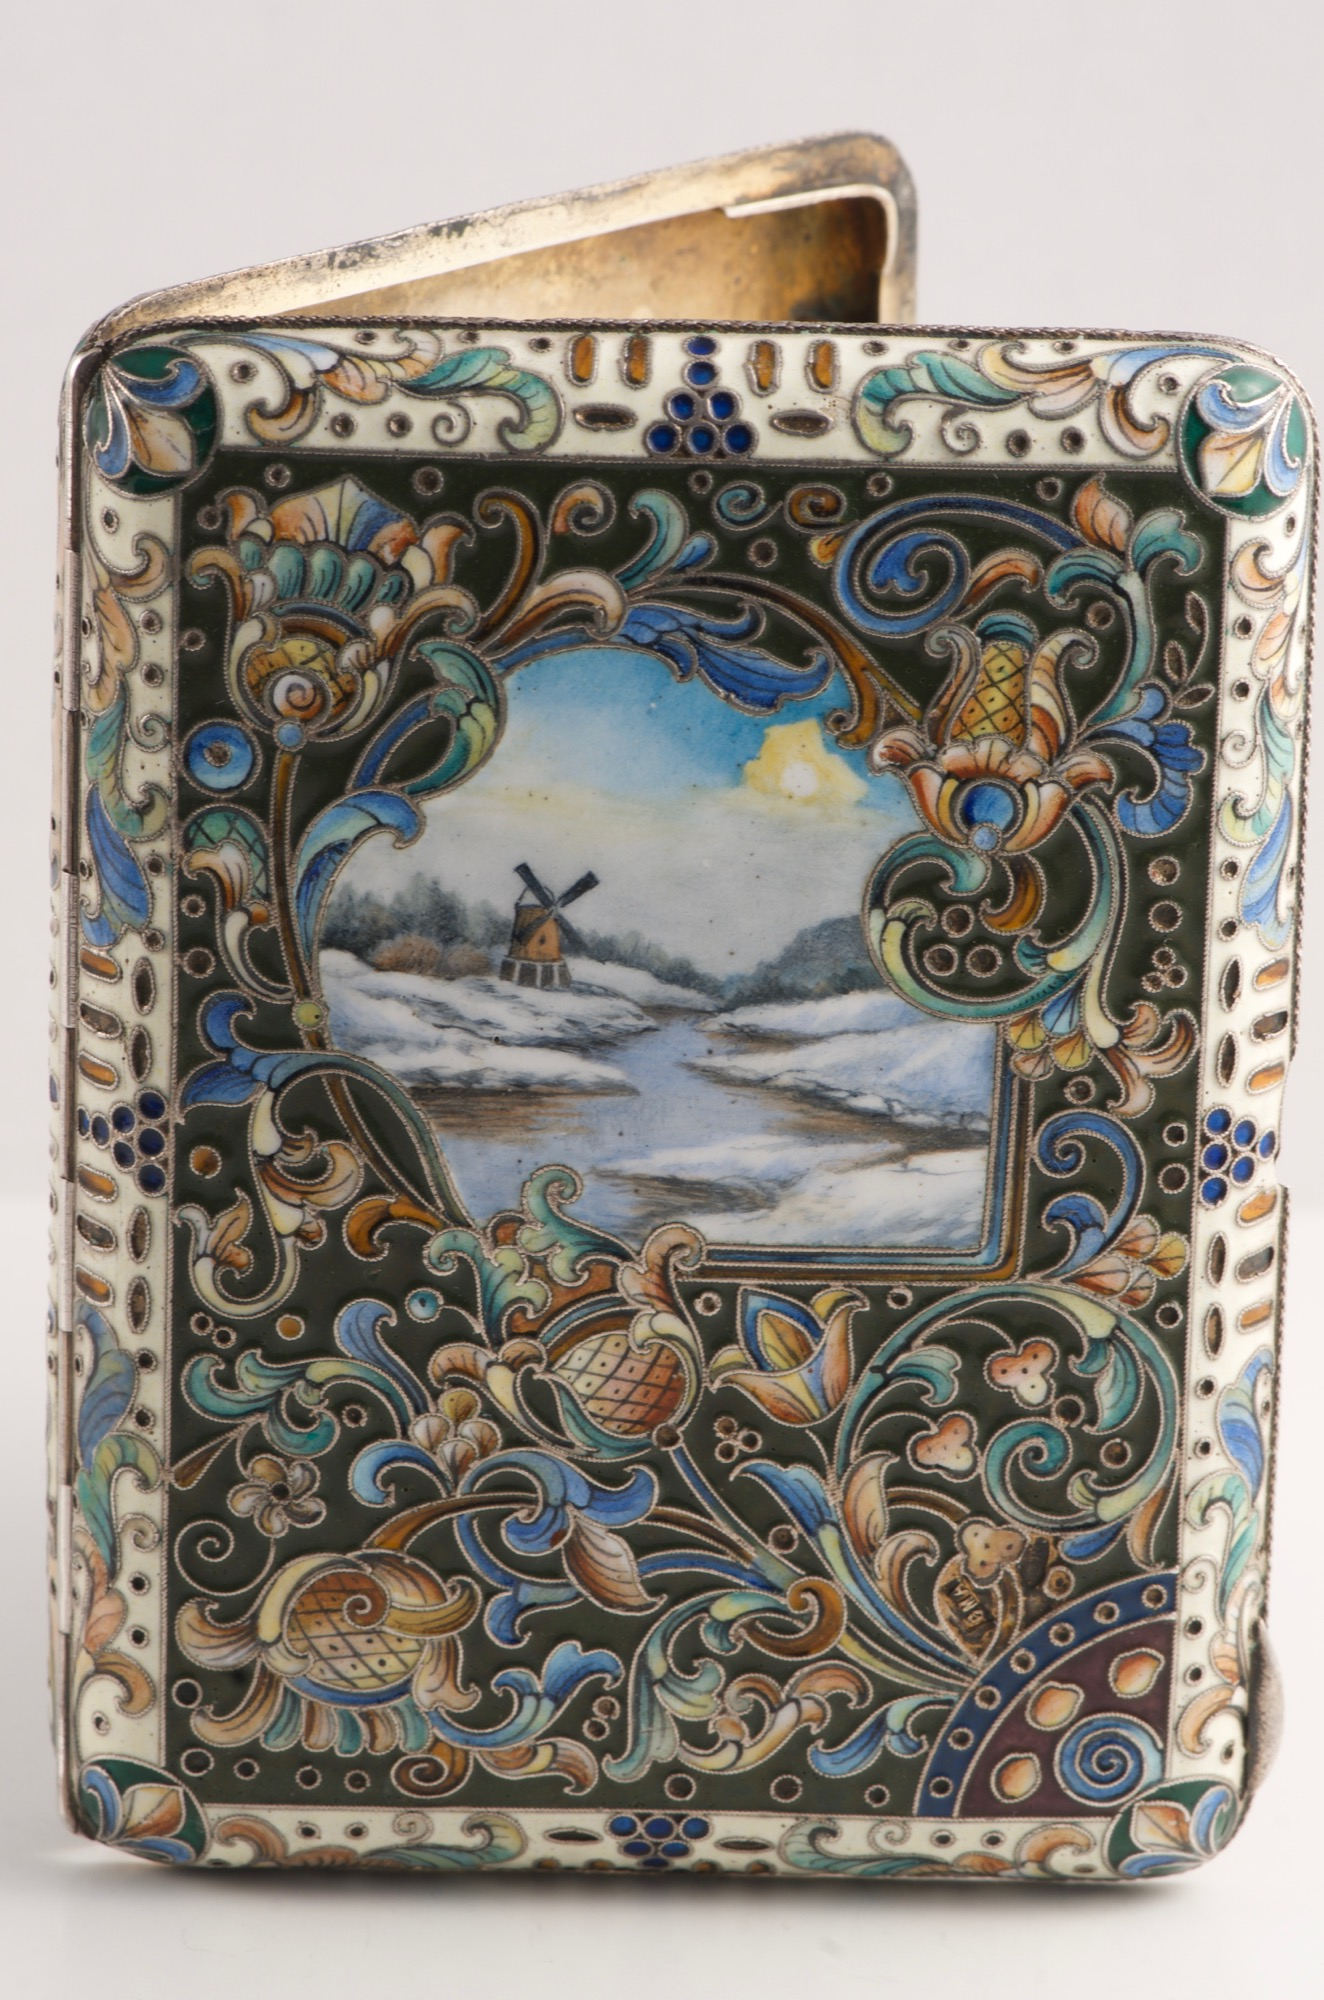 HR_SHAPIRO___CO_Russian_enamel_case_c_1900.jpg